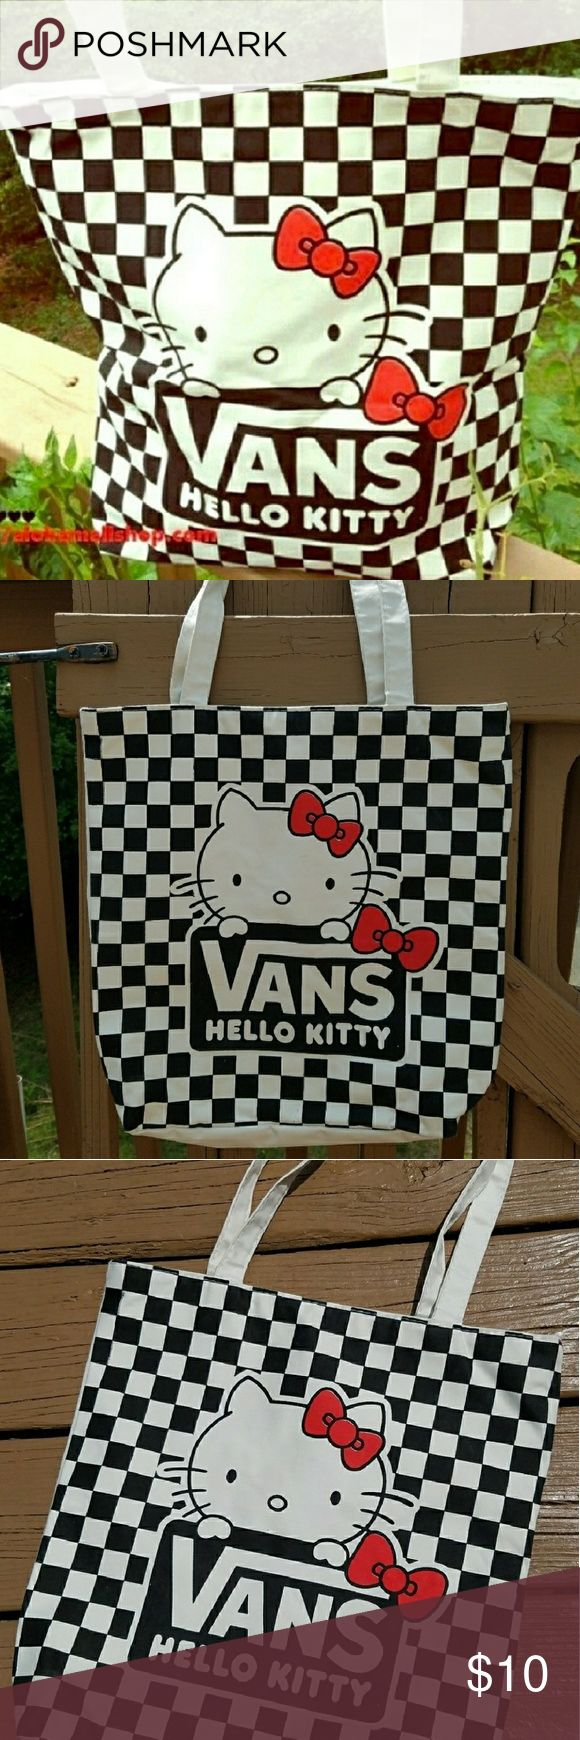 Beach bag. Spaciousness unique Vans hello kitty. Bags Totes